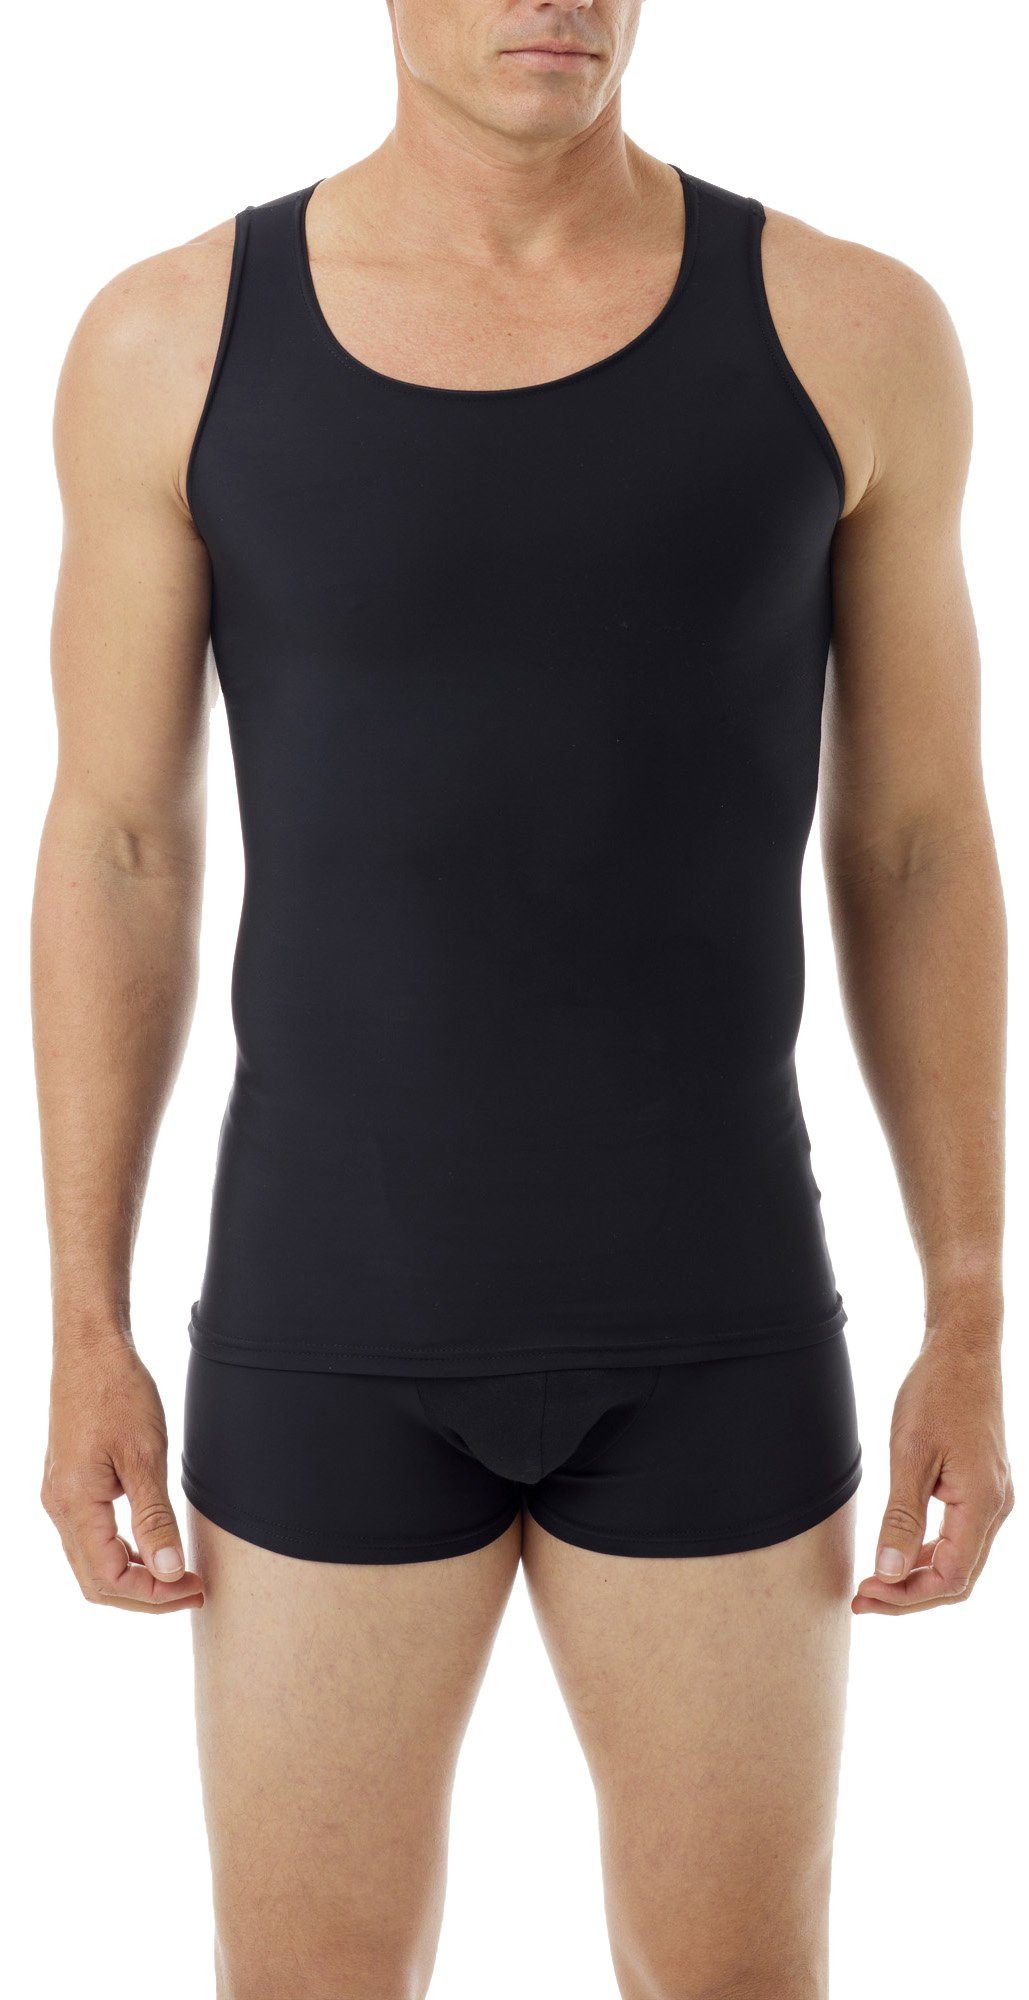 Underworks Mens Microfiber Compression Tank, XSmall, Black by Underworks (Image #1)